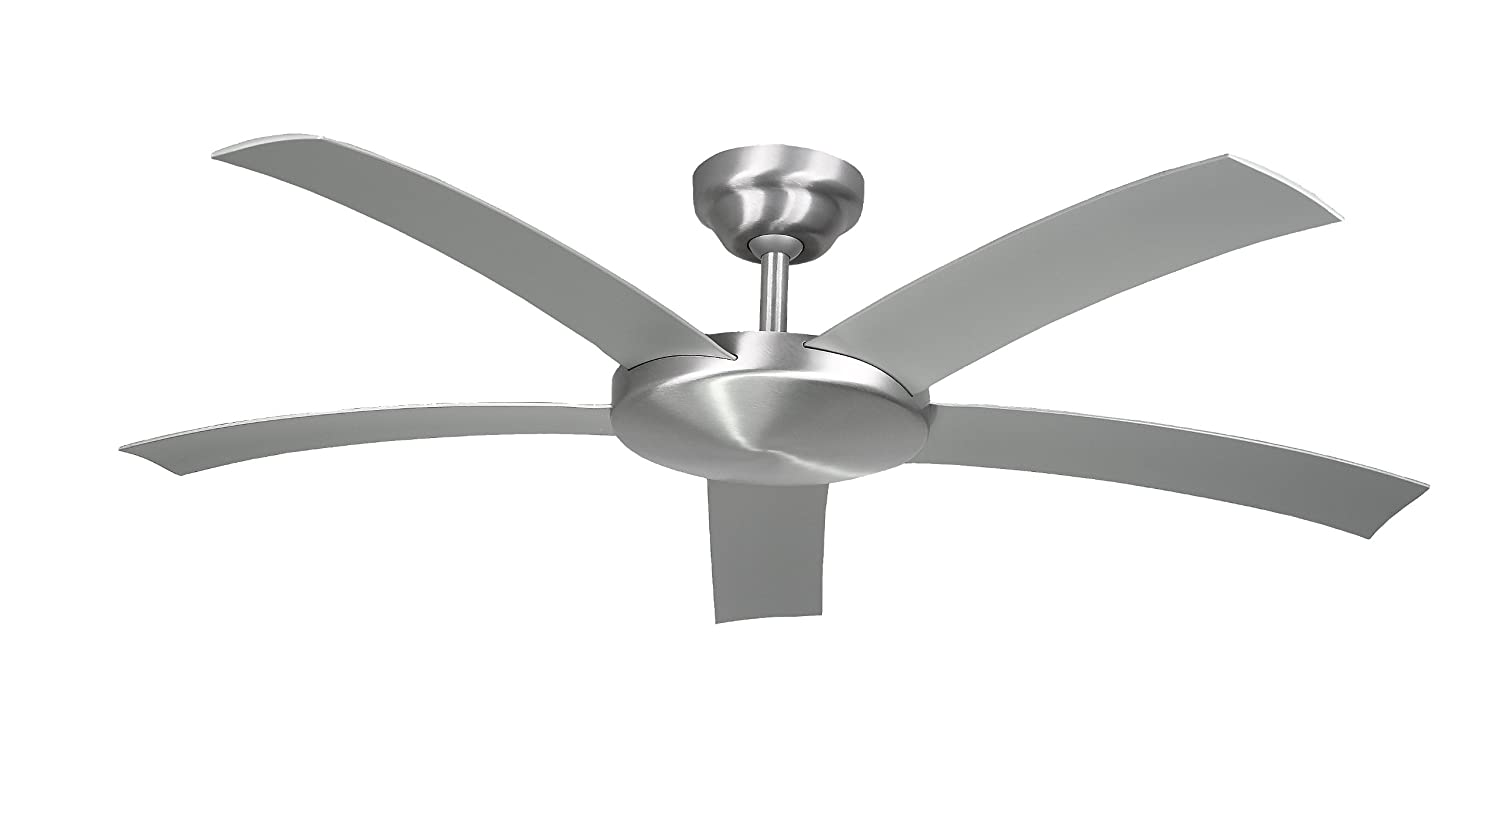 Deckenventilator Kaufen Hunter Pacific Deckenventilator Attitude Outdoor Ip44 Inklusive